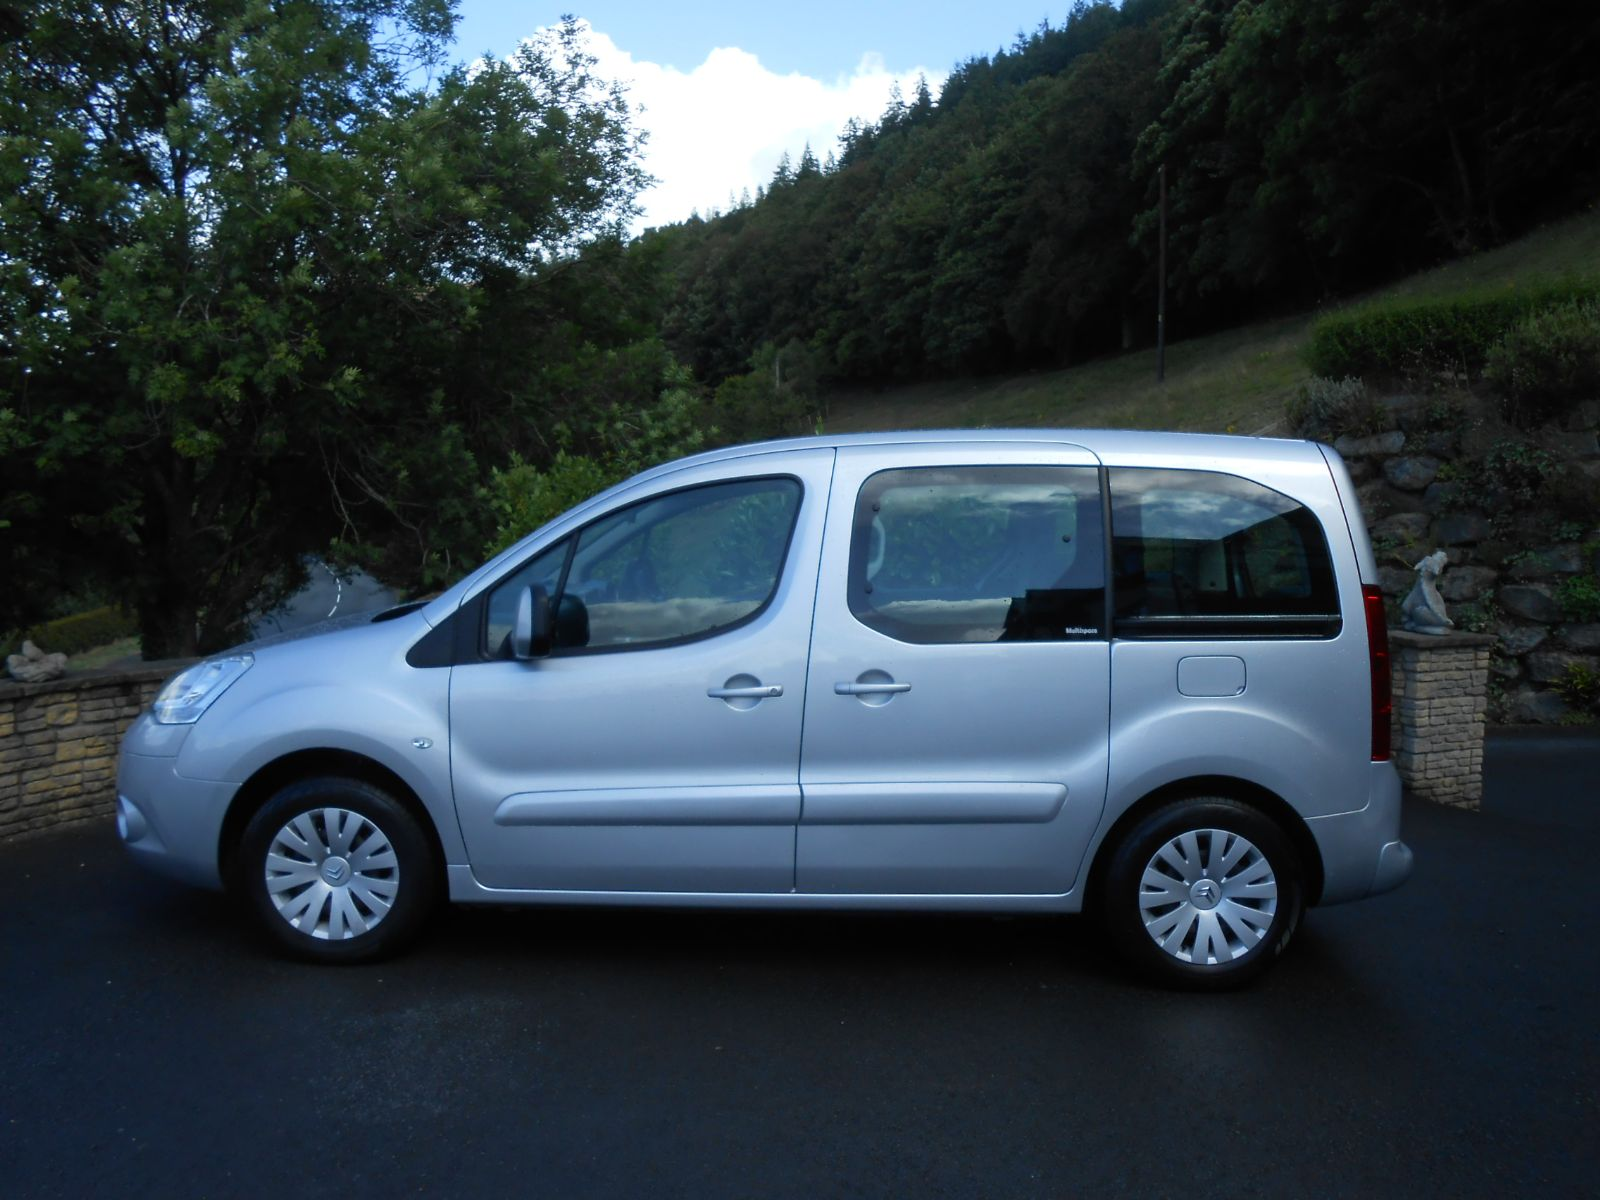 citroen berlingo 1 6 hdi multispace vtr car for sale llanidloes powys mid wales kevin jones cars. Black Bedroom Furniture Sets. Home Design Ideas